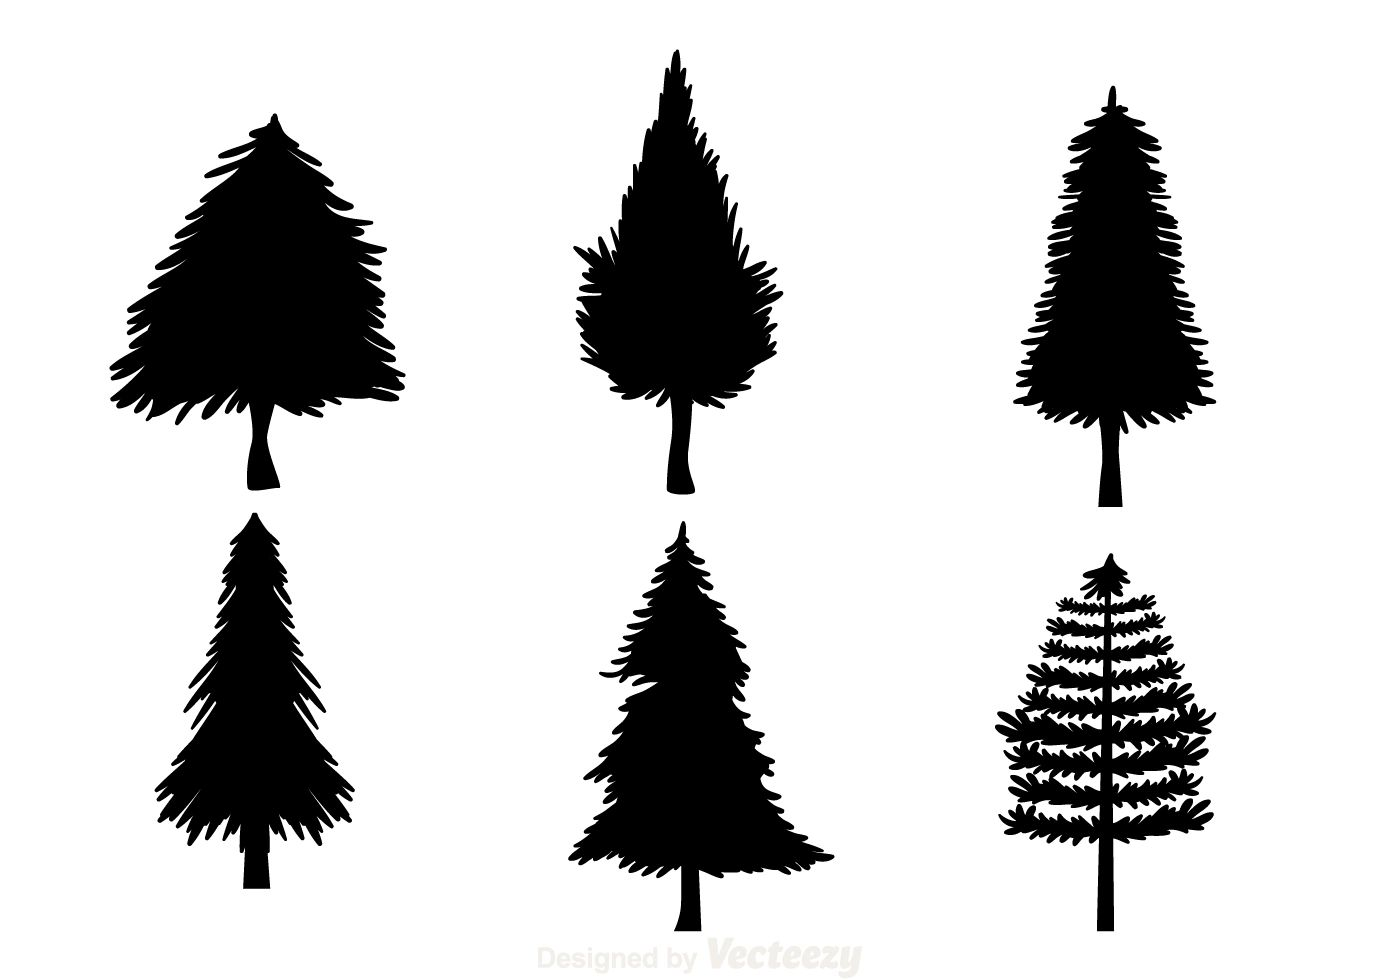 Christmas tree vector image royalty free stock image image 34973066 - Christmas Tree Vector Image Royalty Free Stock Image Image 34973066 Simple Pine Tree Silhouette Vector Download